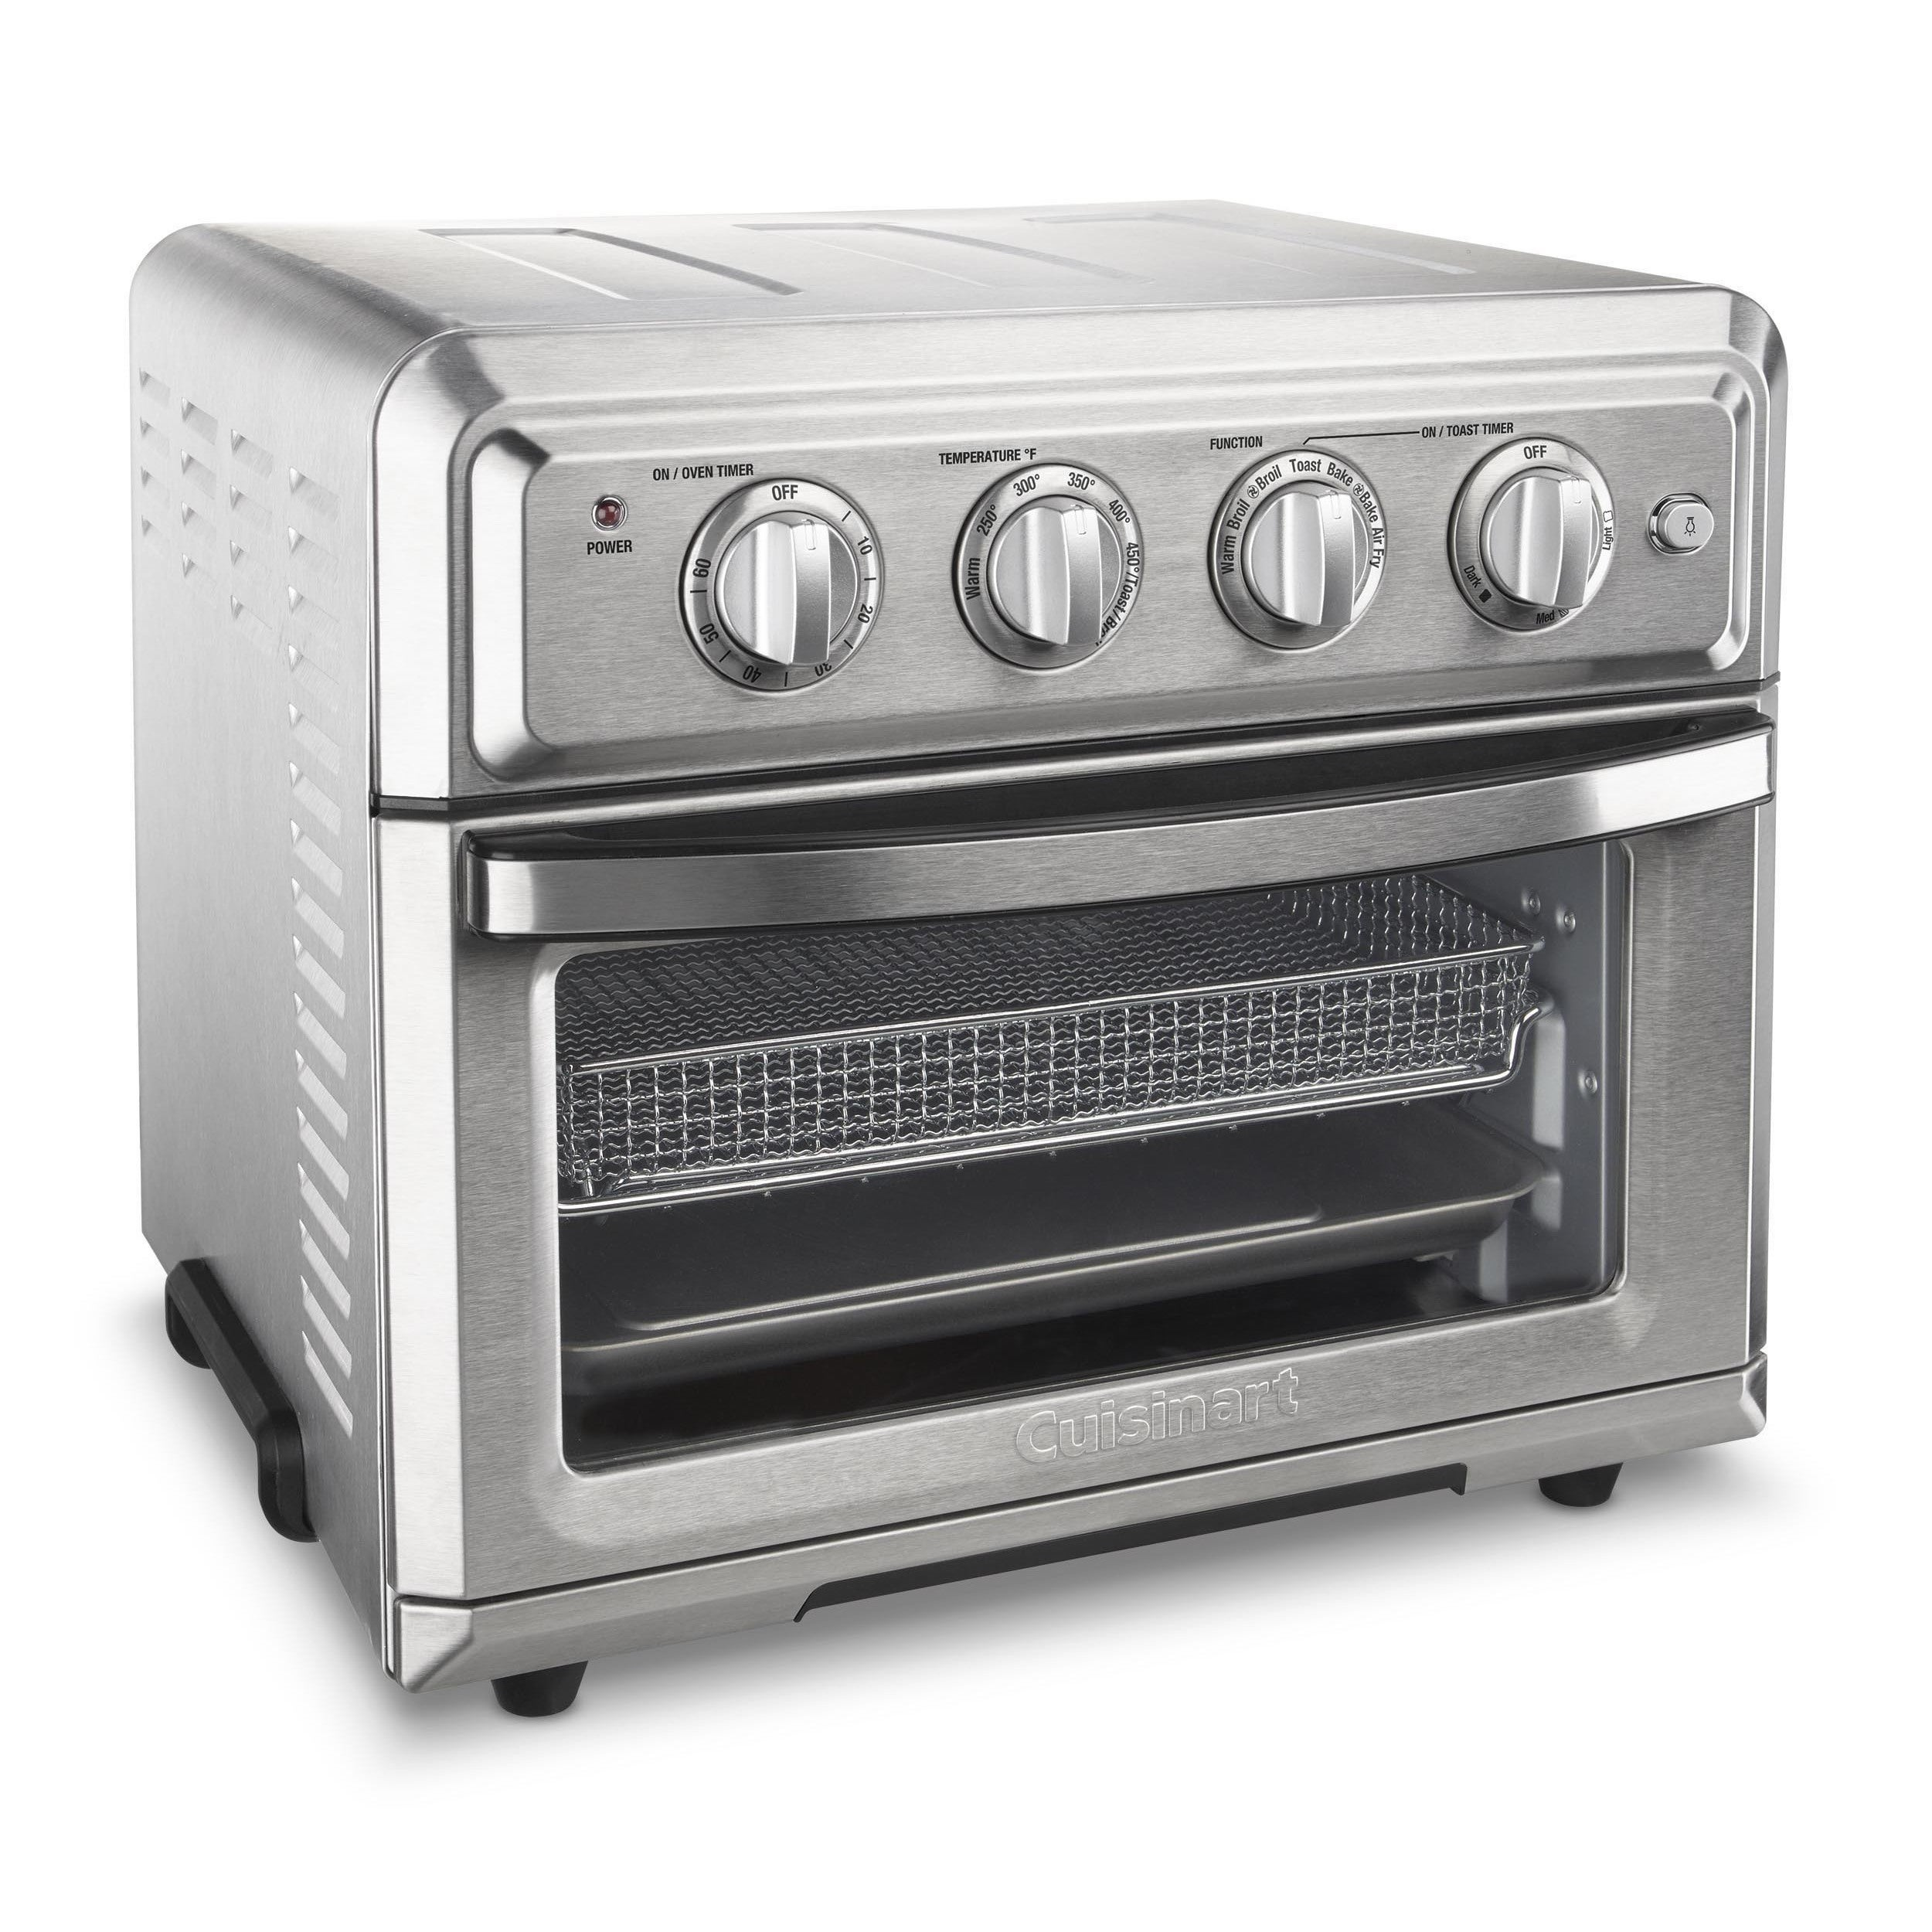 Cuisinart TOA 60 Stainless Steel Combination Air Fryer Toaster Oven